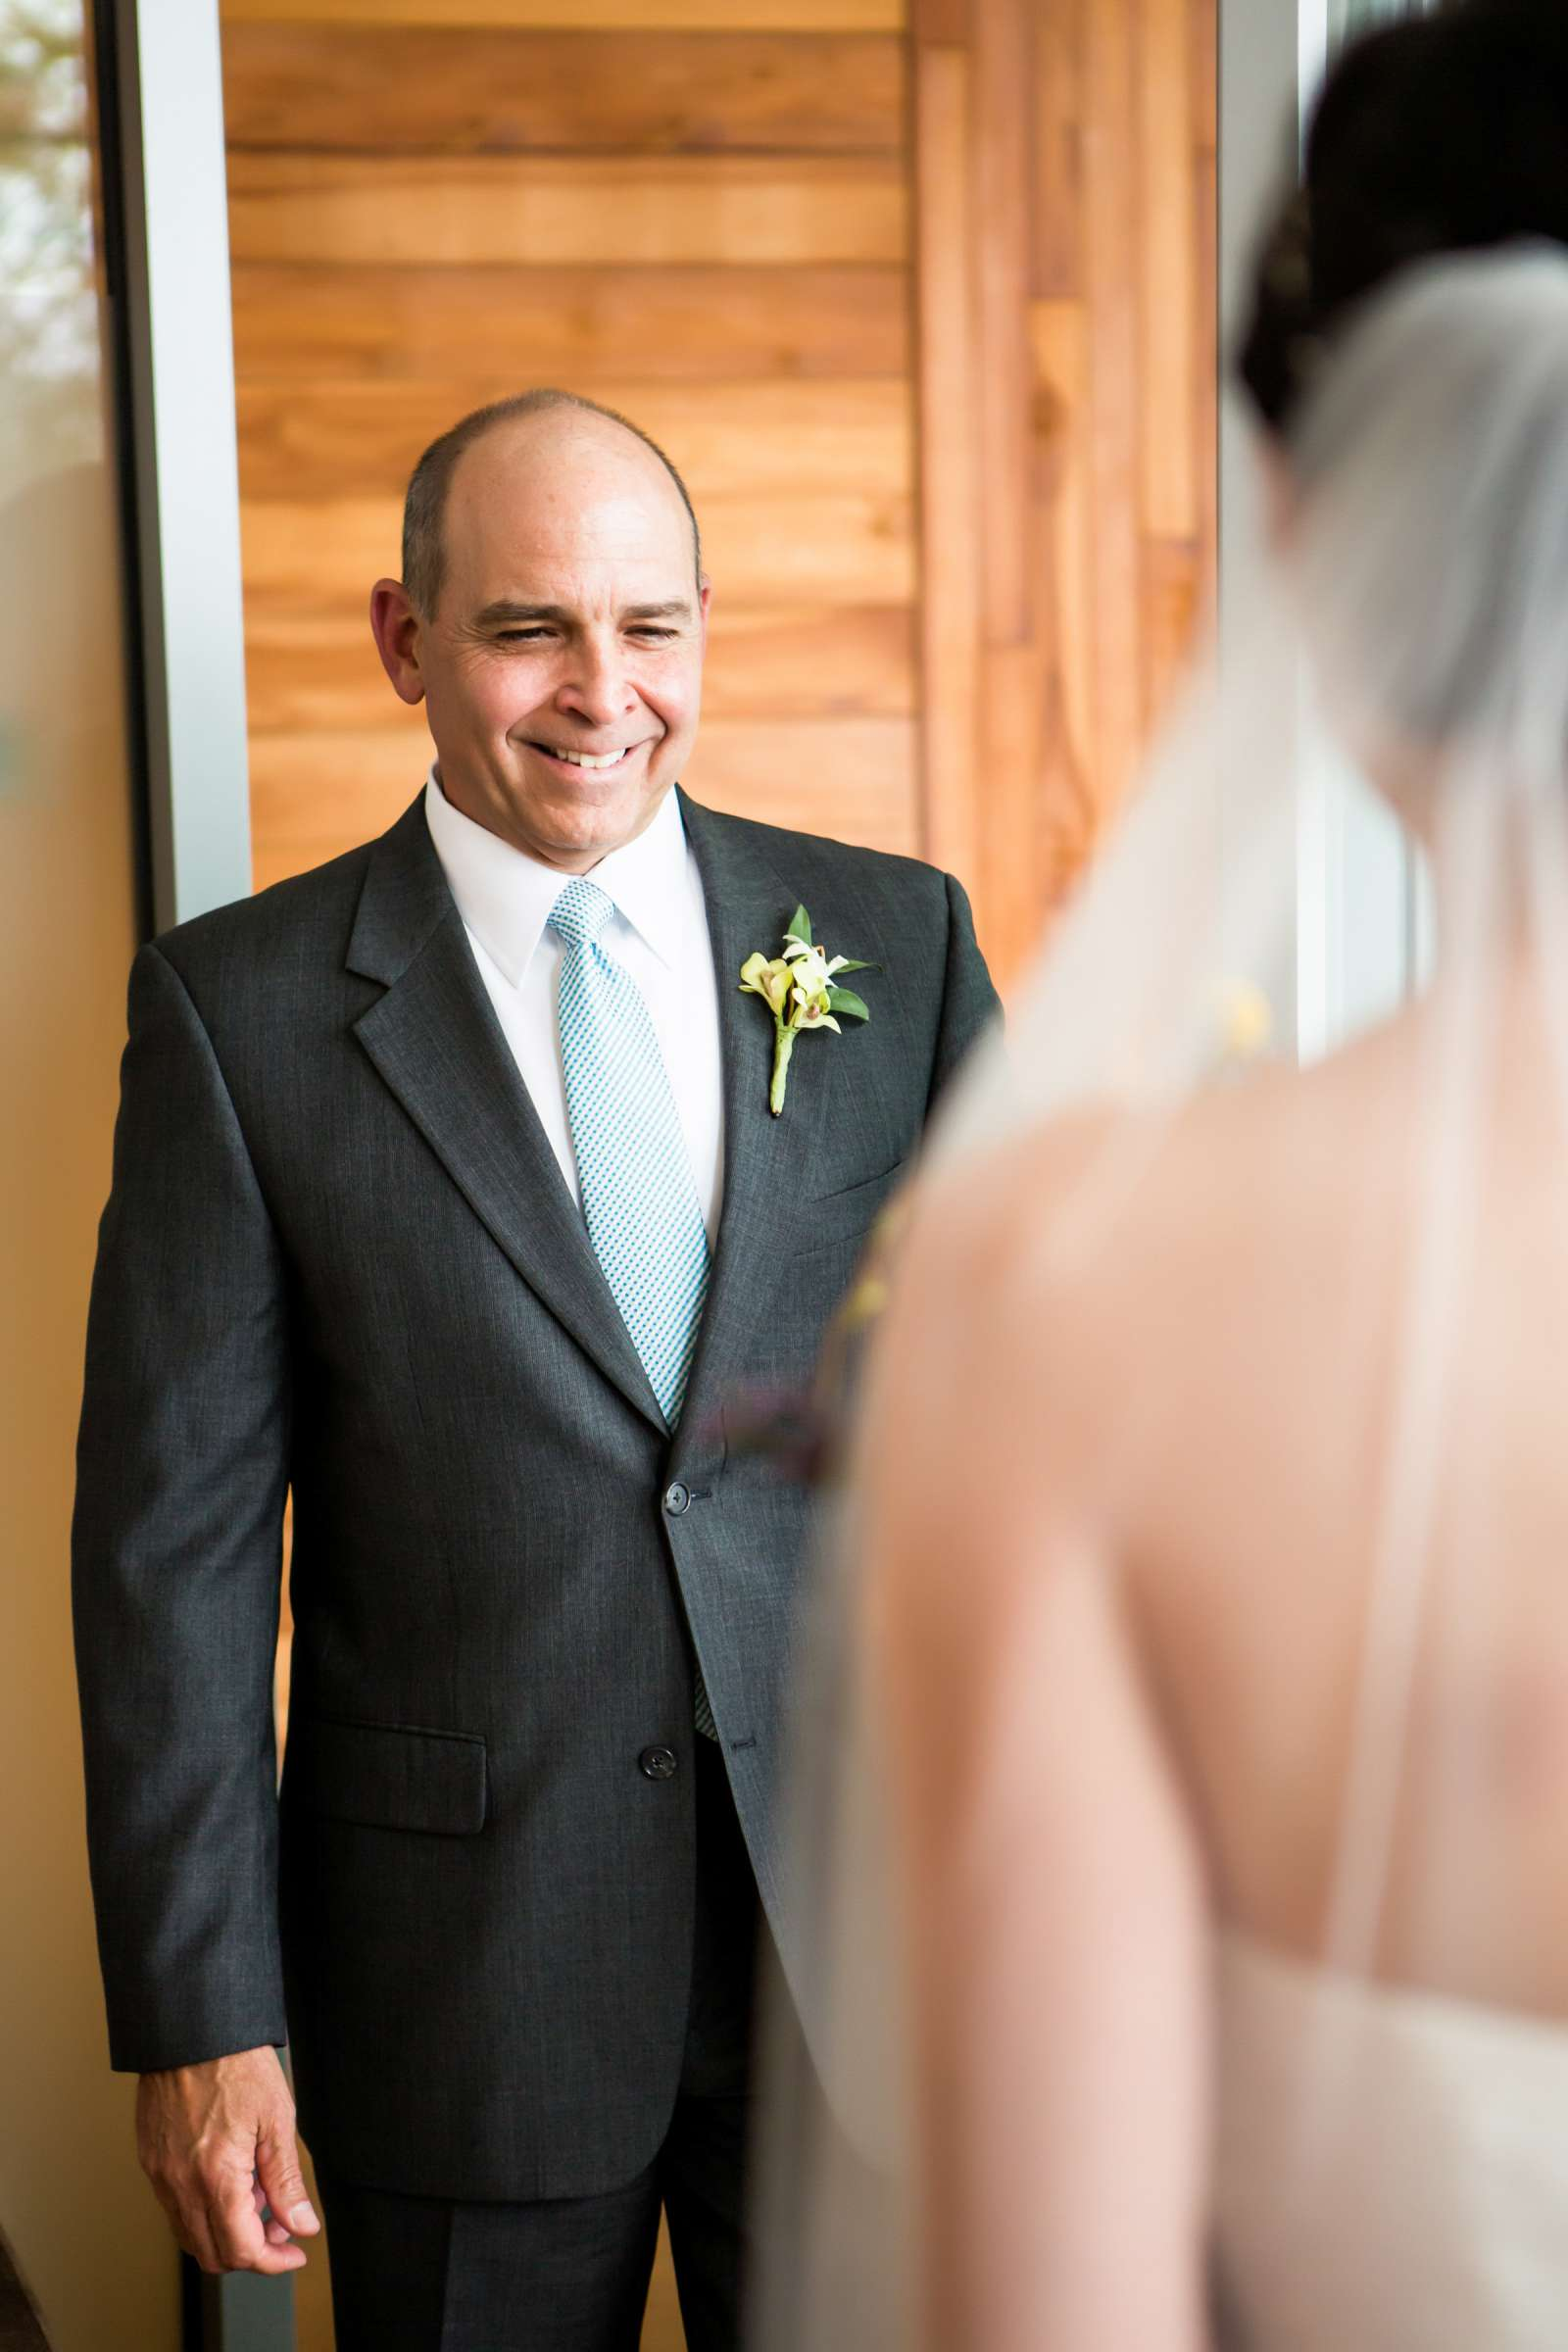 Scripps Seaside Forum Wedding coordinated by Francine Ribeau Events, Shaina and Christopher Wedding Photo #20 by True Photography